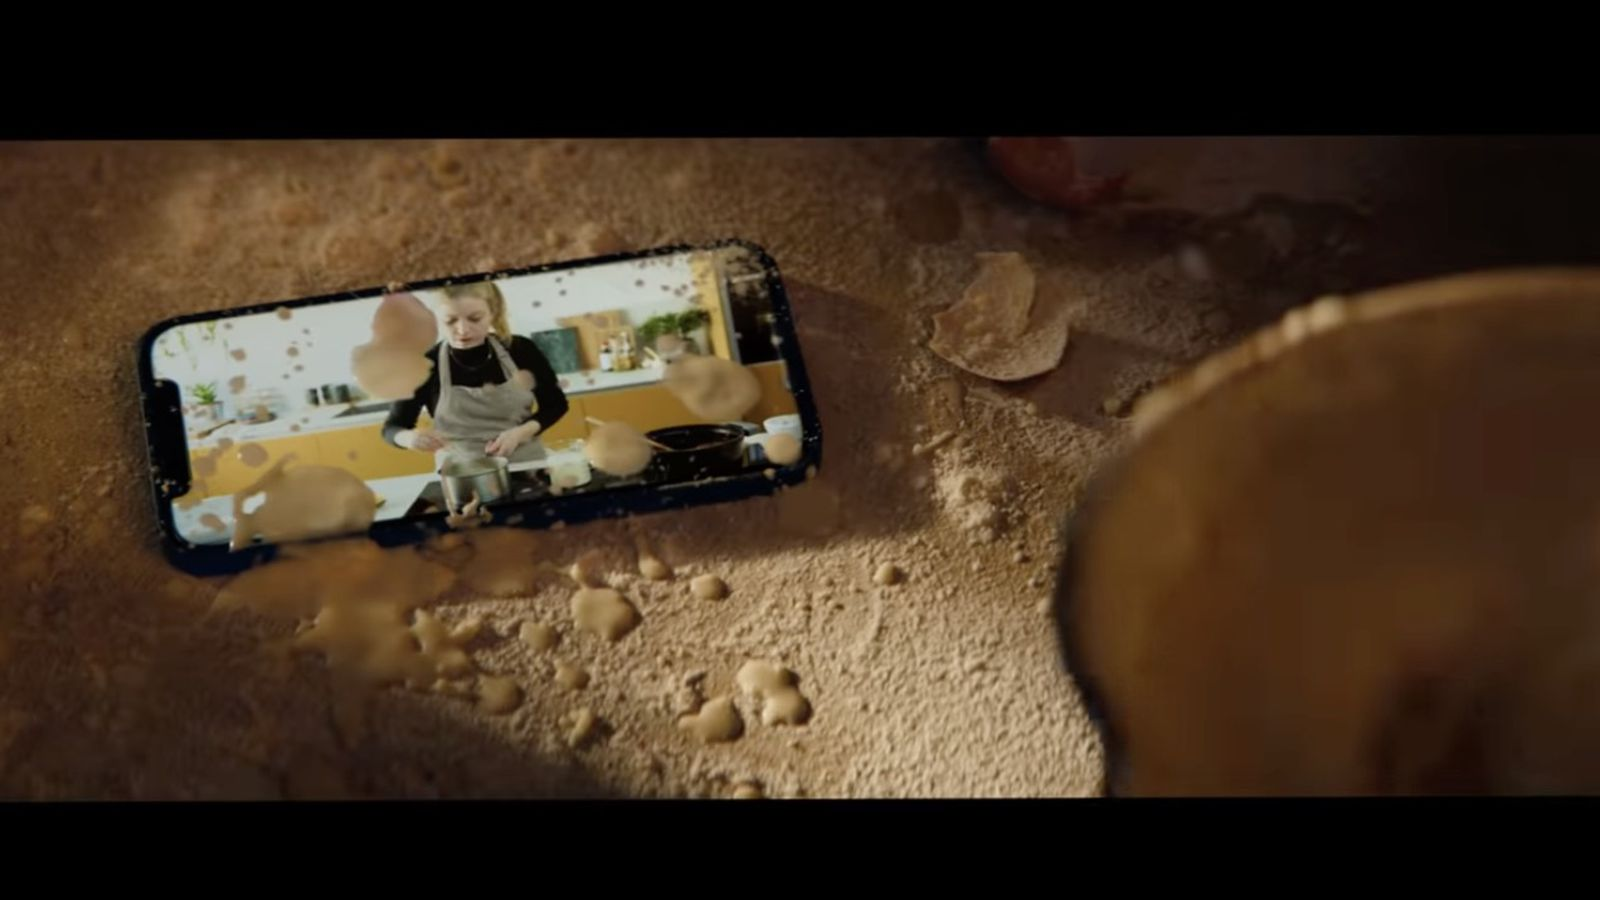 Apple Promotes iPhone 12 'Ceramic Shield' Display In New 'Cook' Ad - MacRumors